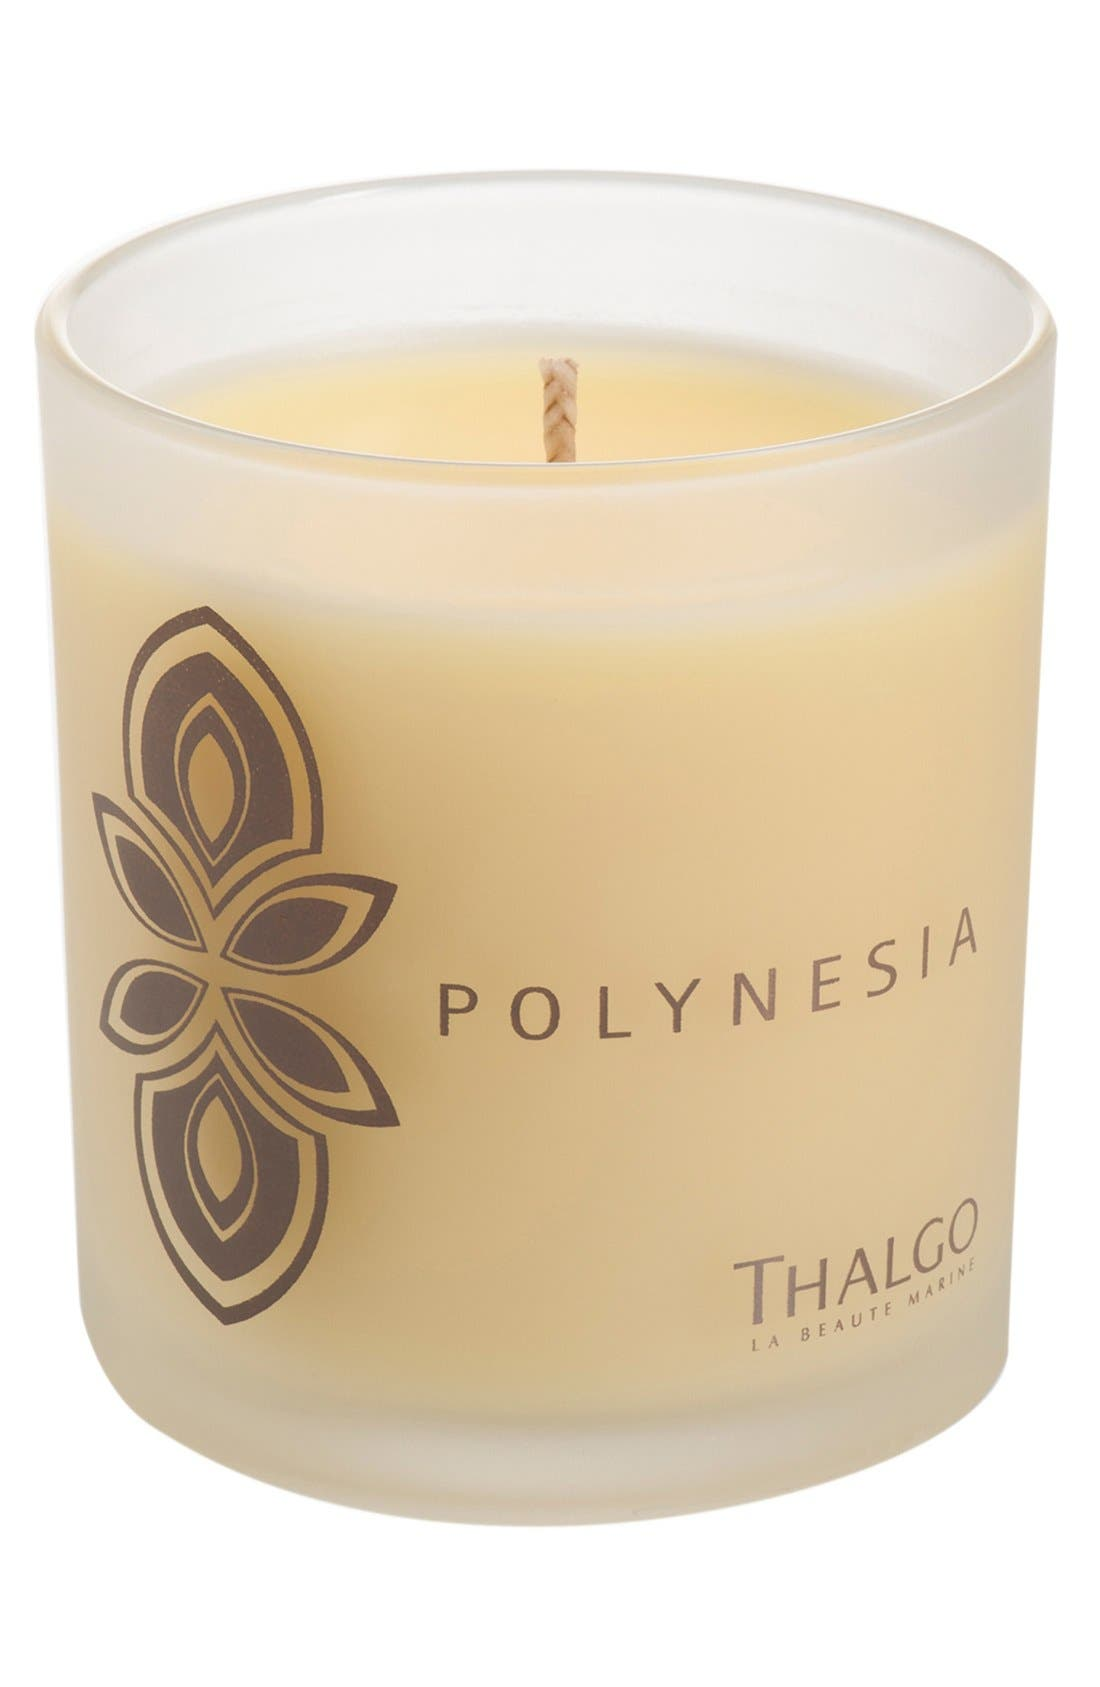 'Polynesia' Scented Candle,                         Main,                         color, NO COLOR